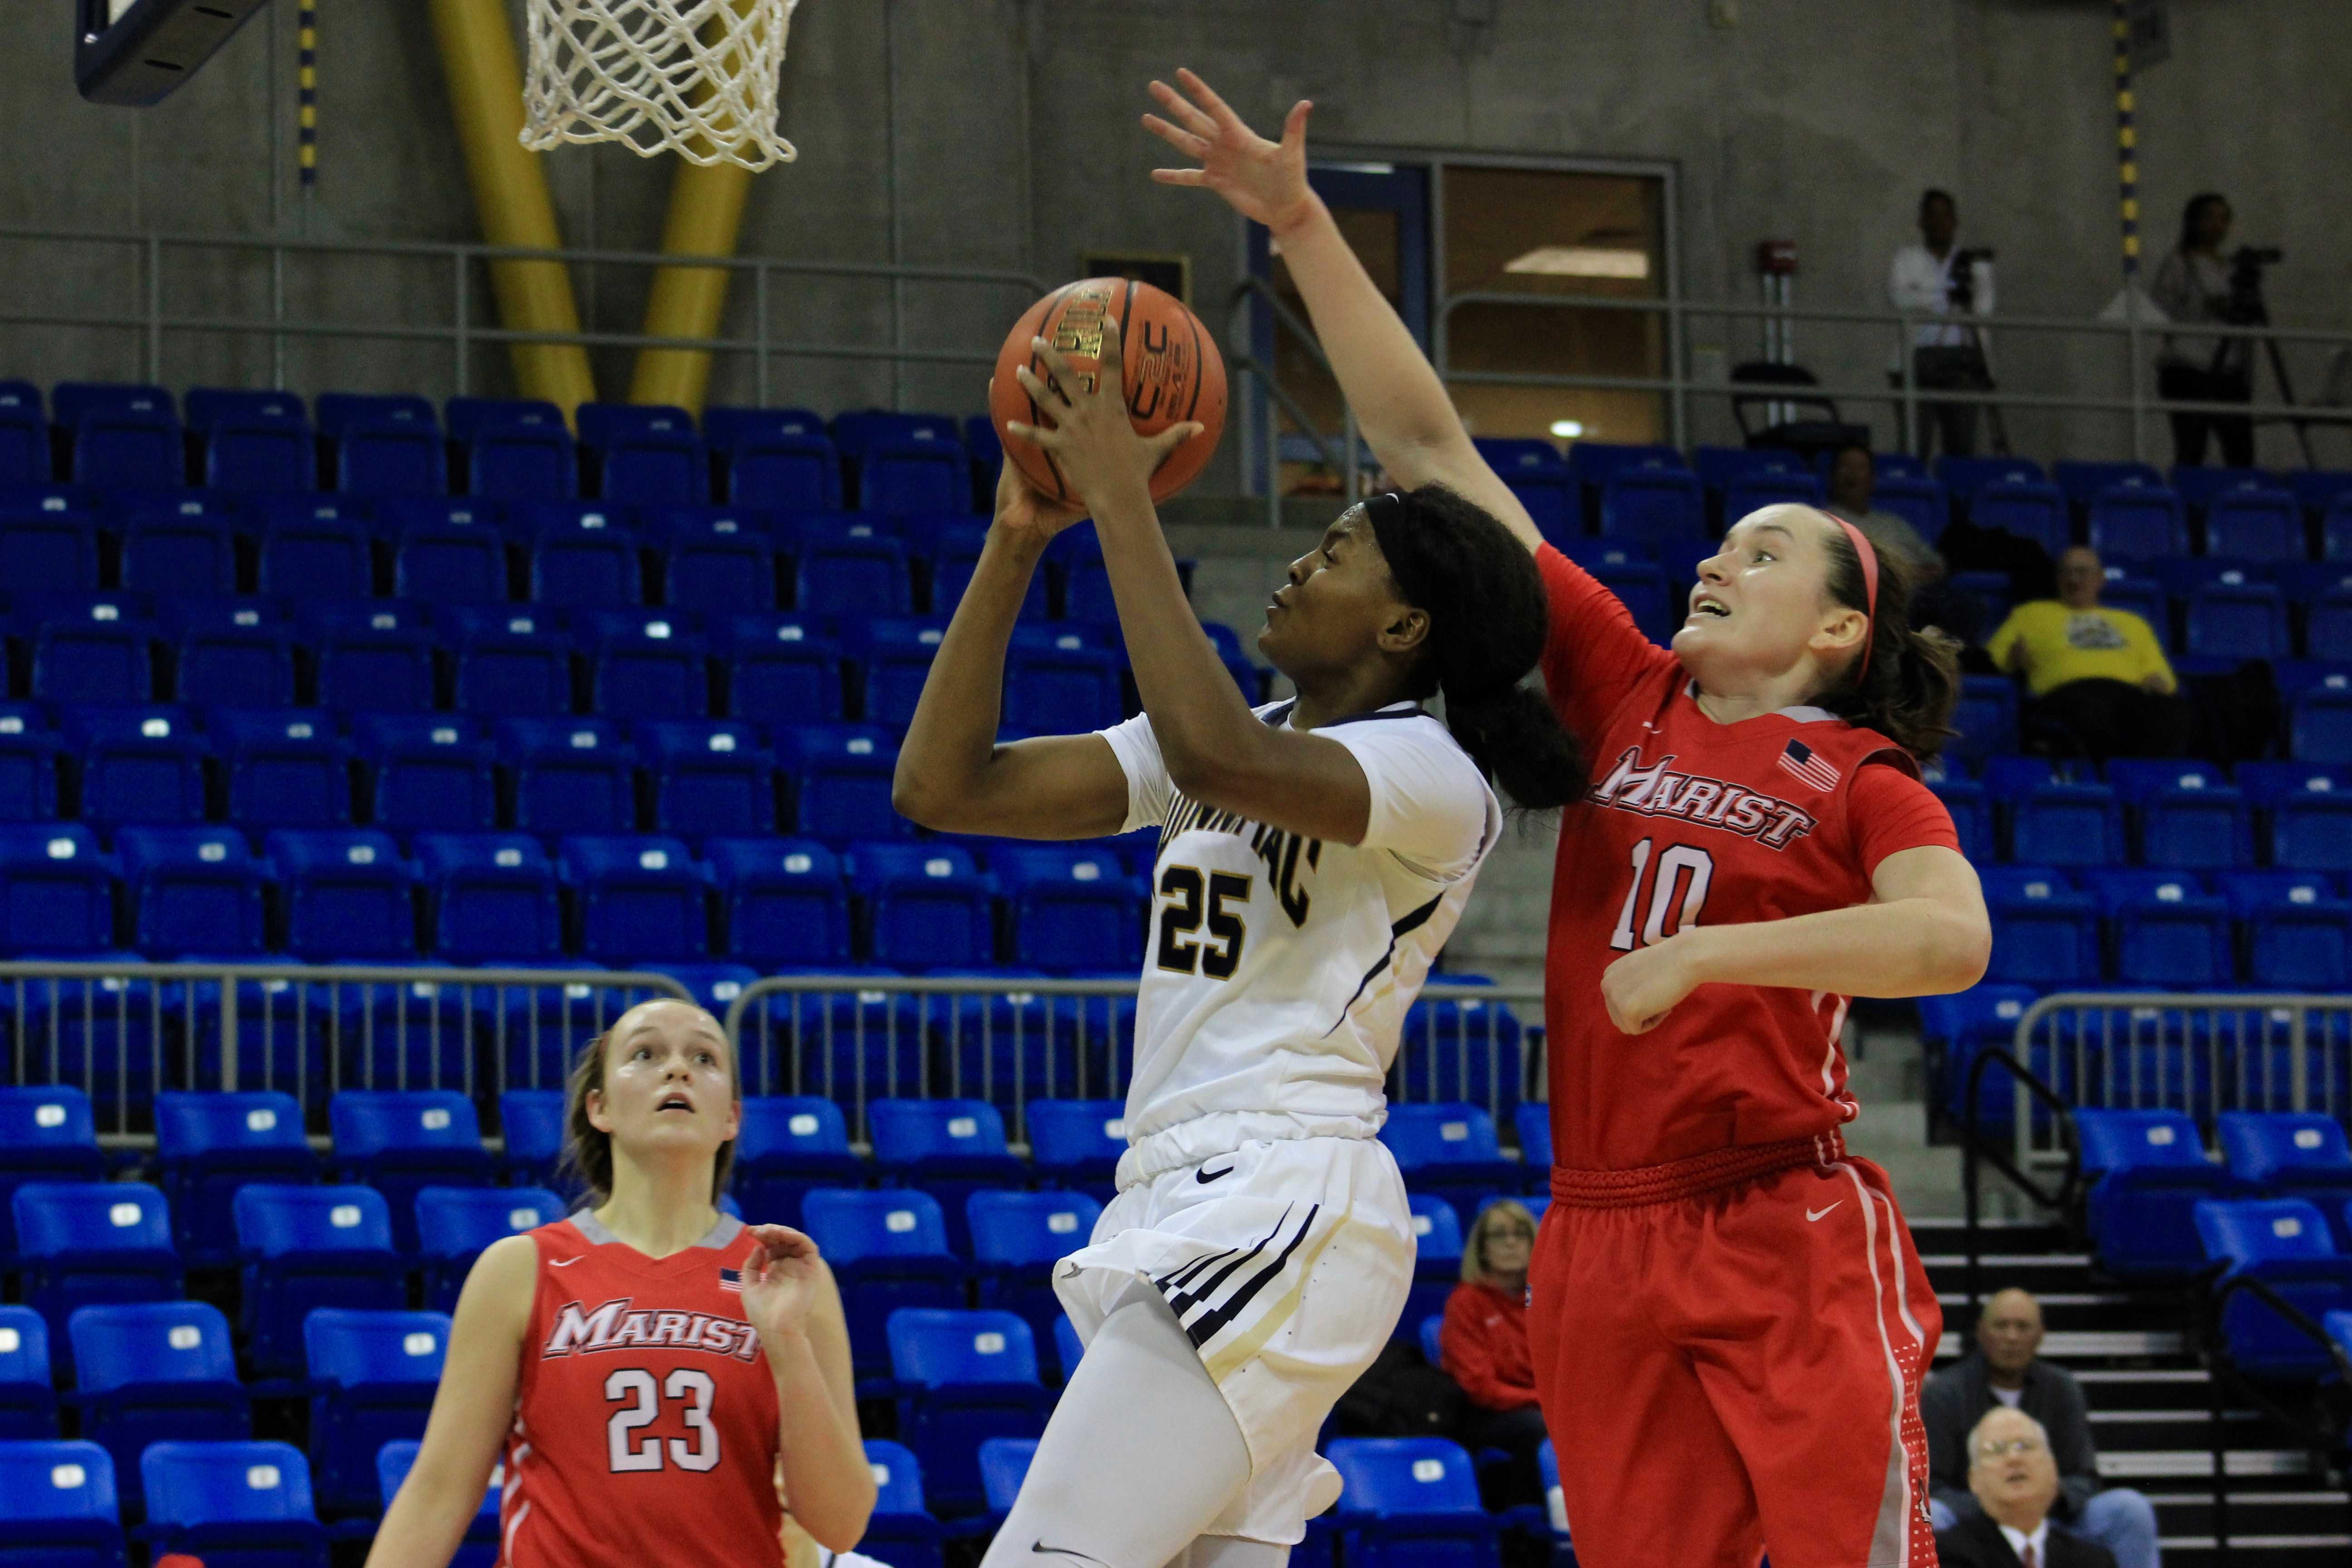 Women's basketball plows through snow day in 79-57 victory over Marist